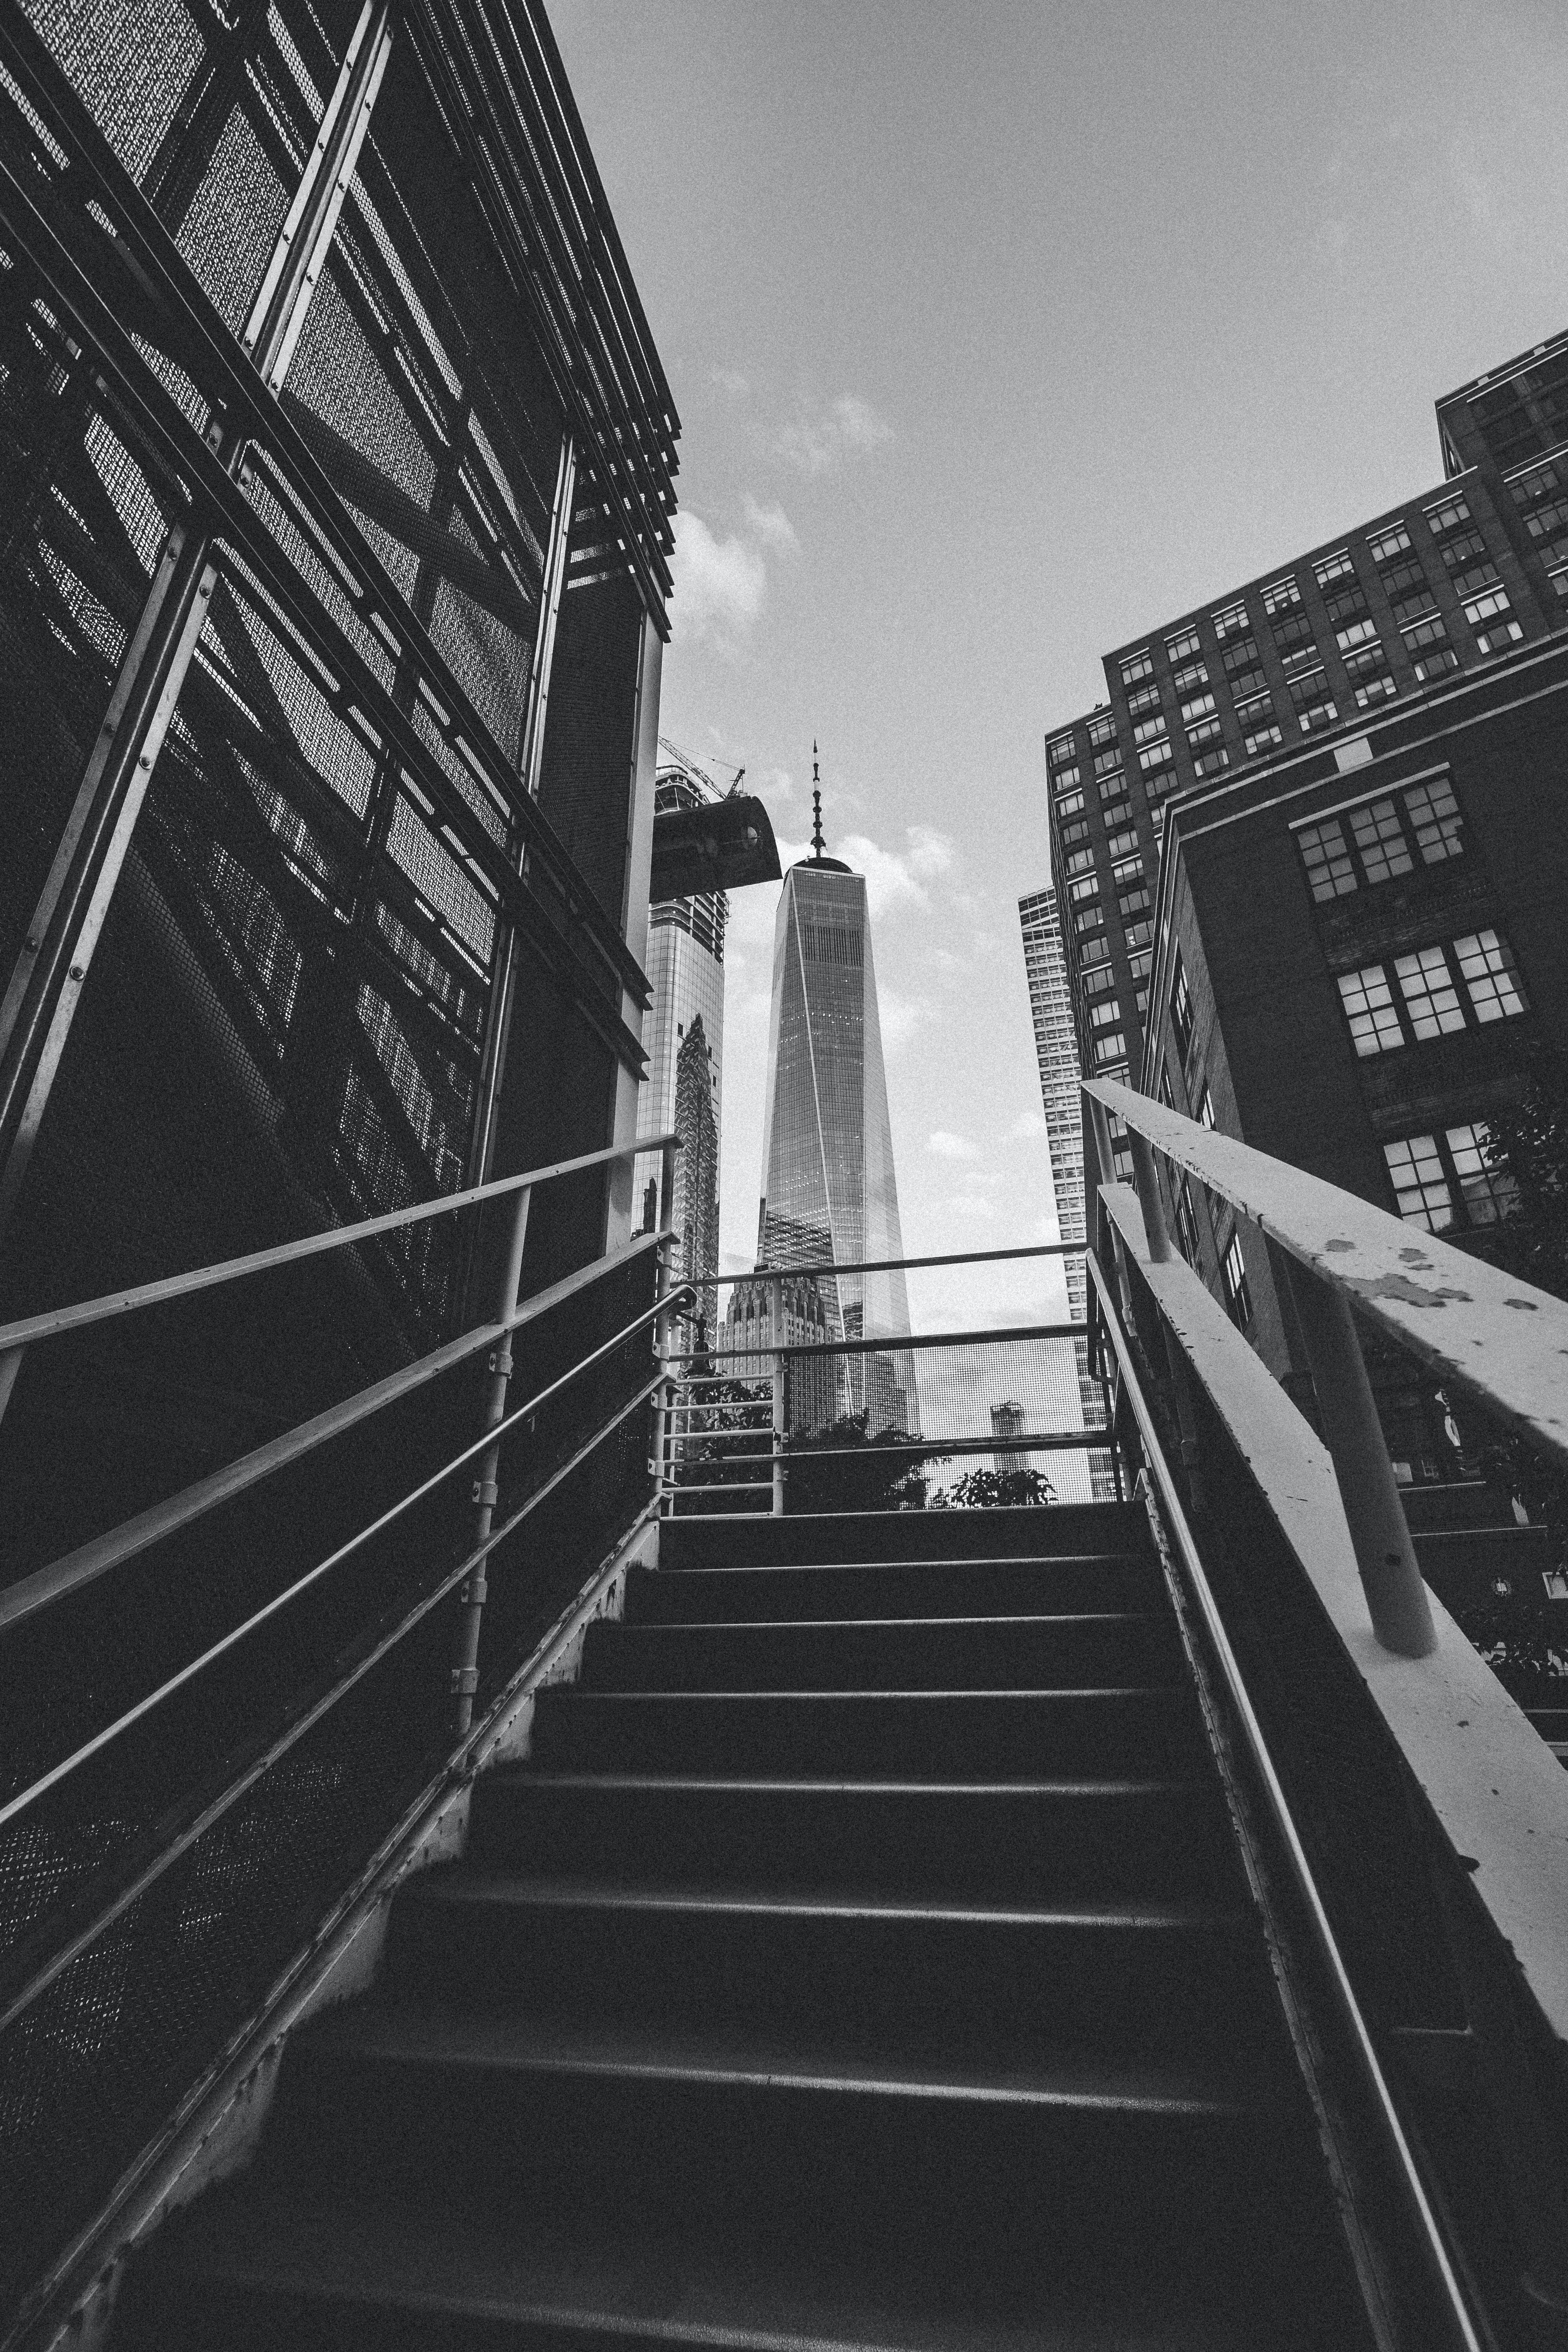 grayscale photography of stairway leading to building